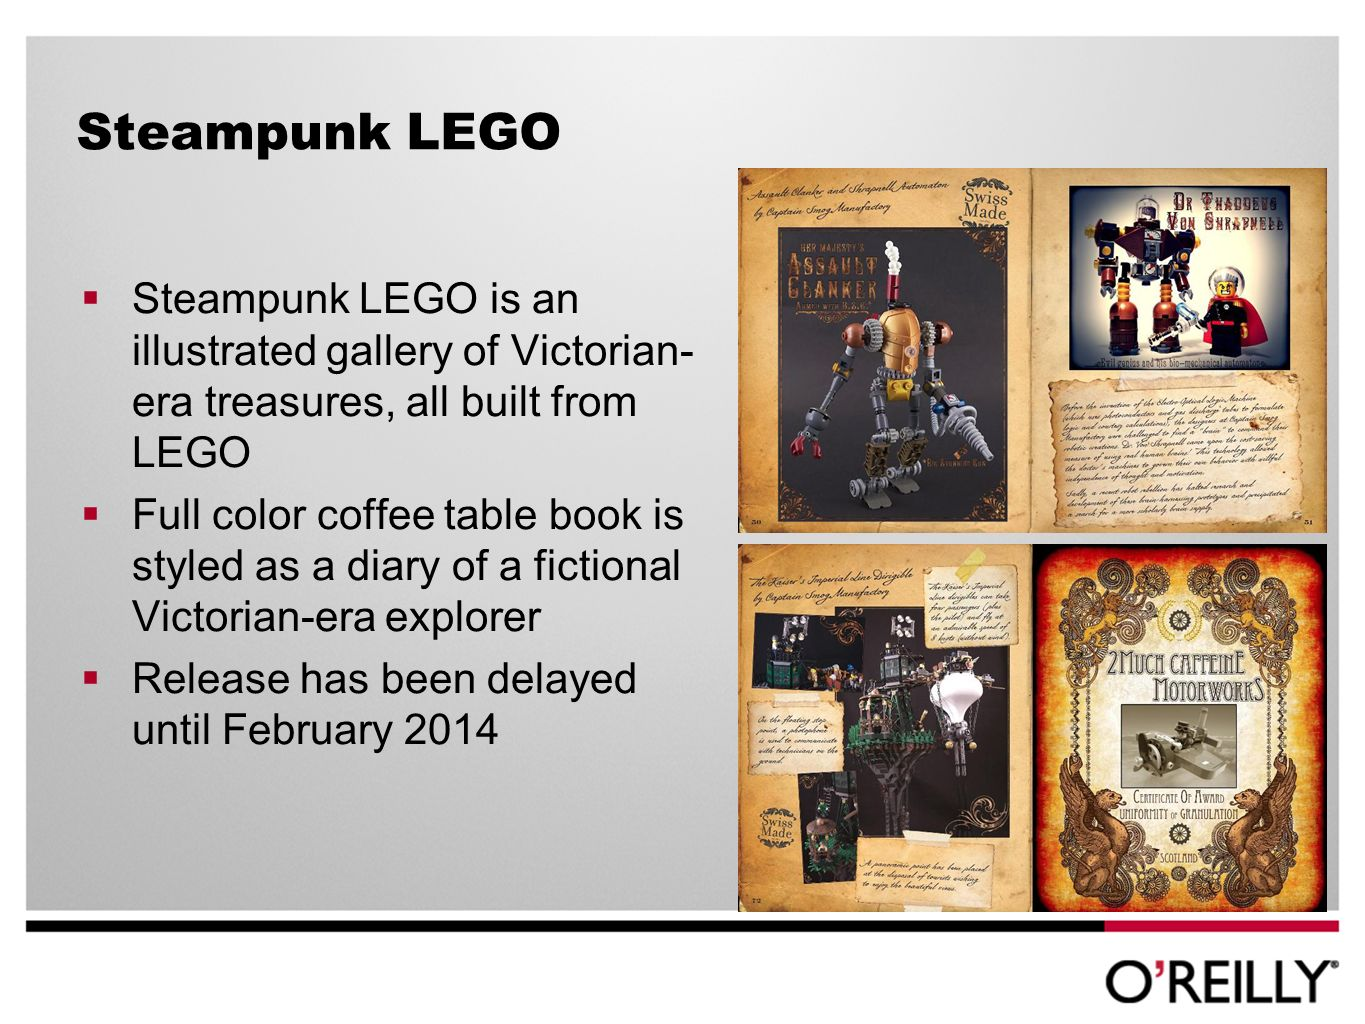 Steampunk LEGO Steampunk LEGO is an illustrated gallery of Victorian- era treasures, all built from LEGO Full color coffee table book is styled as a diary of a fictional Victorian-era explorer Release has been delayed until February 2014